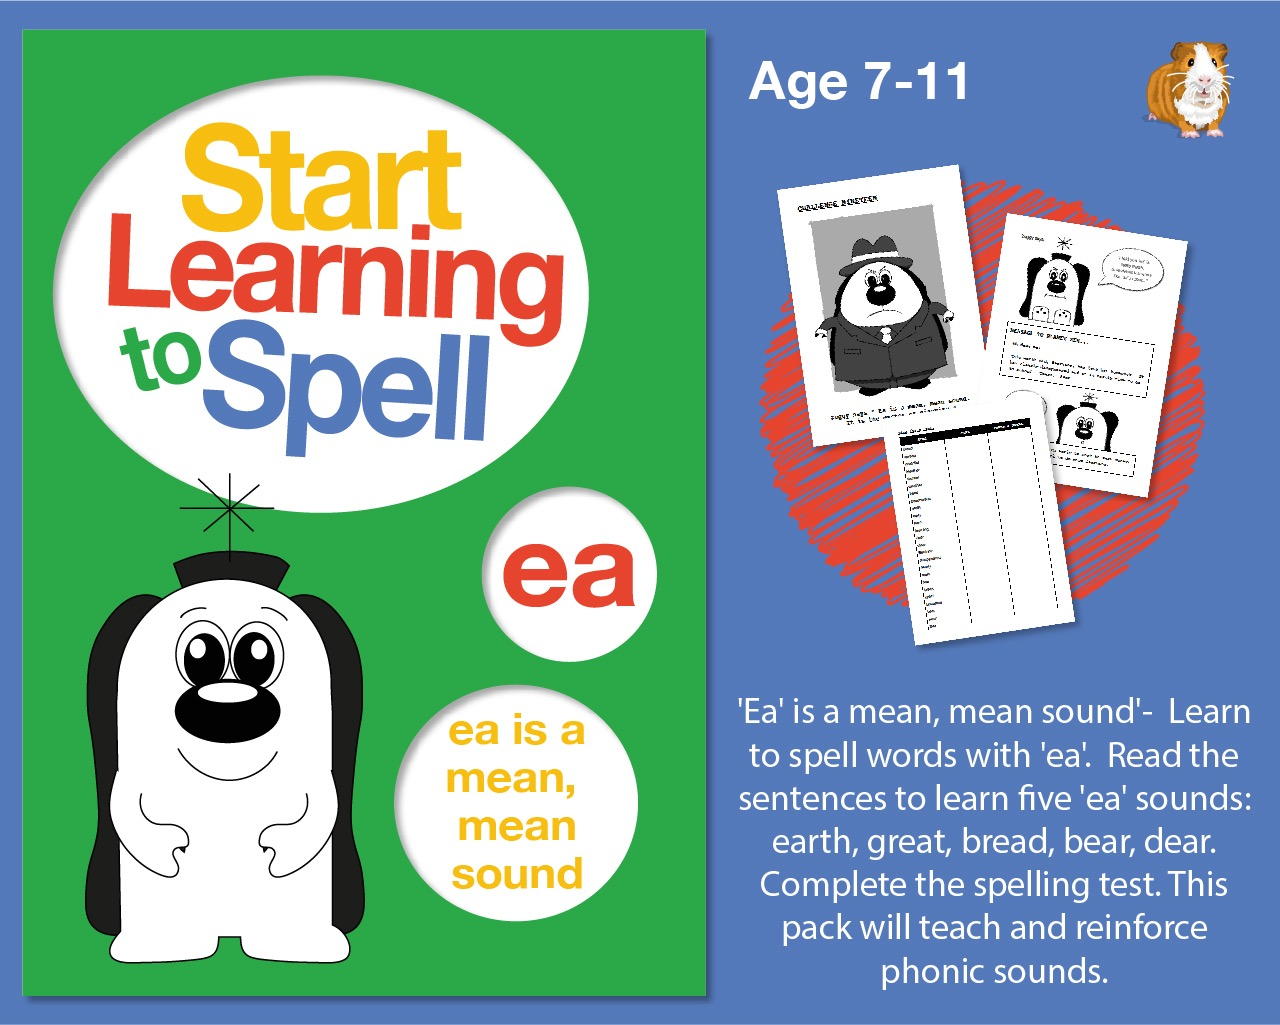 'Ea' Is A Mean, Mean Sound' Learn To Spell Words With 'ea' (7-11 years)